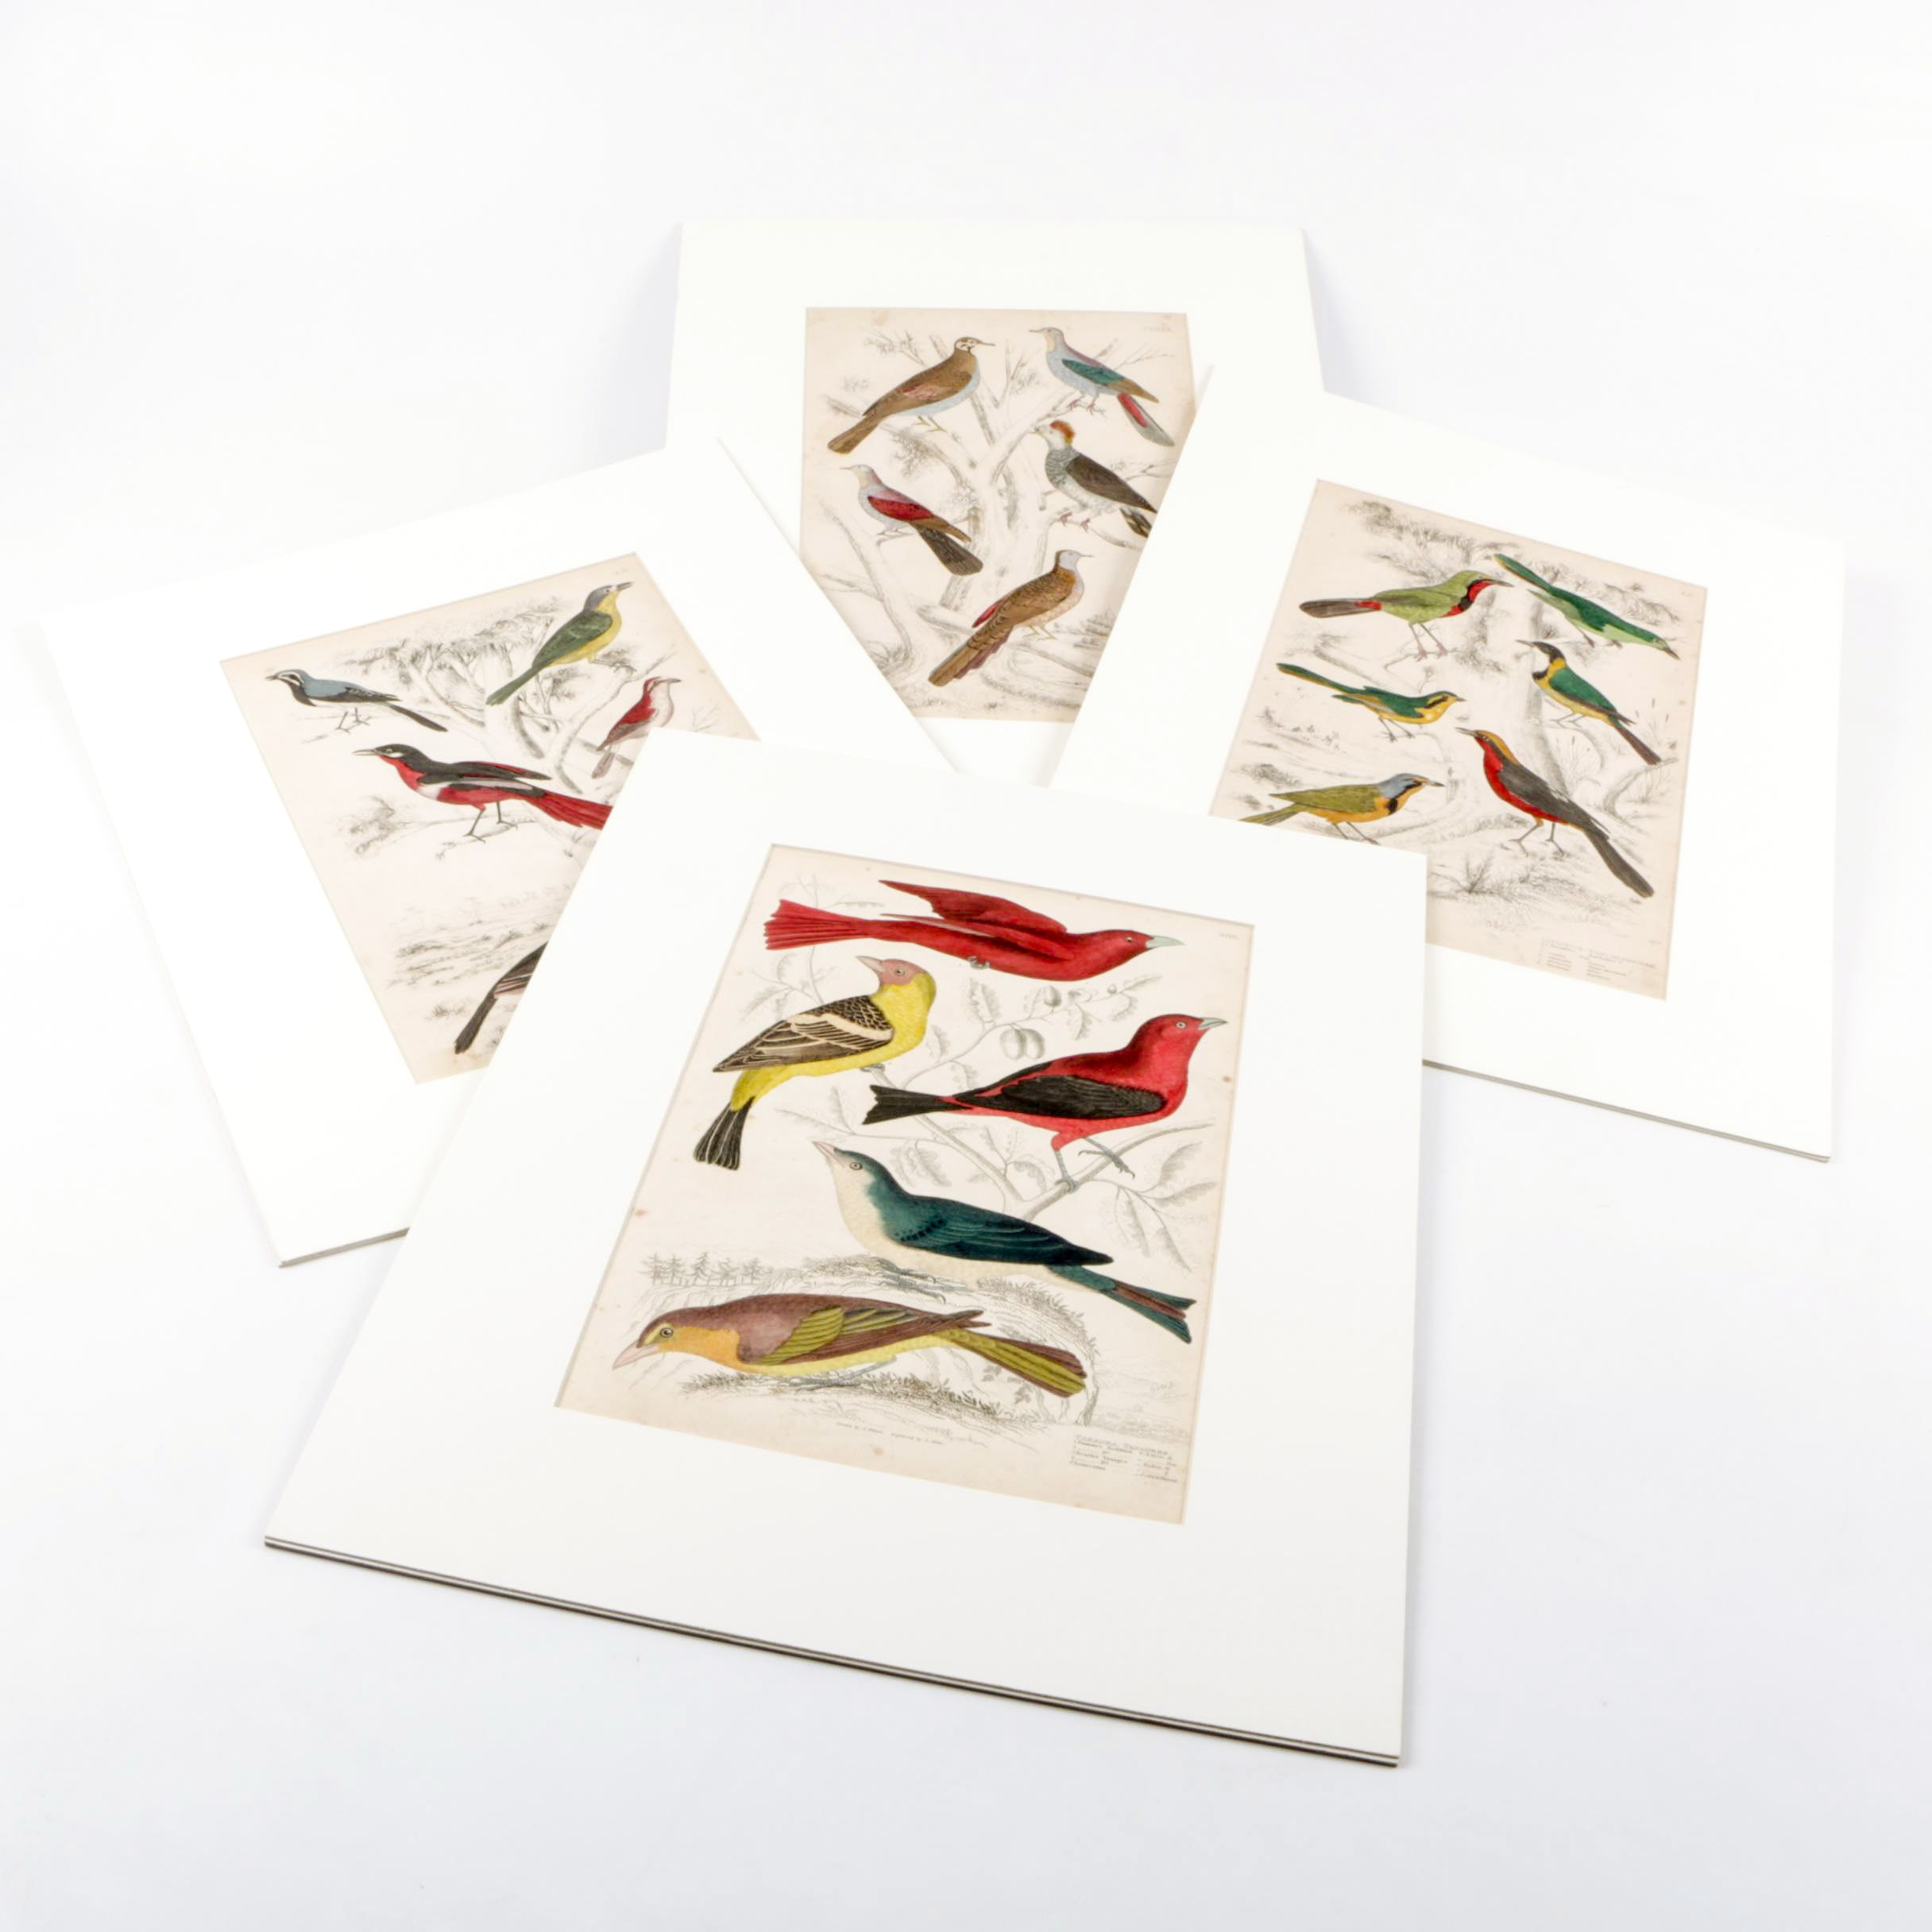 S. Milne Hand Colored Engravings of Birds